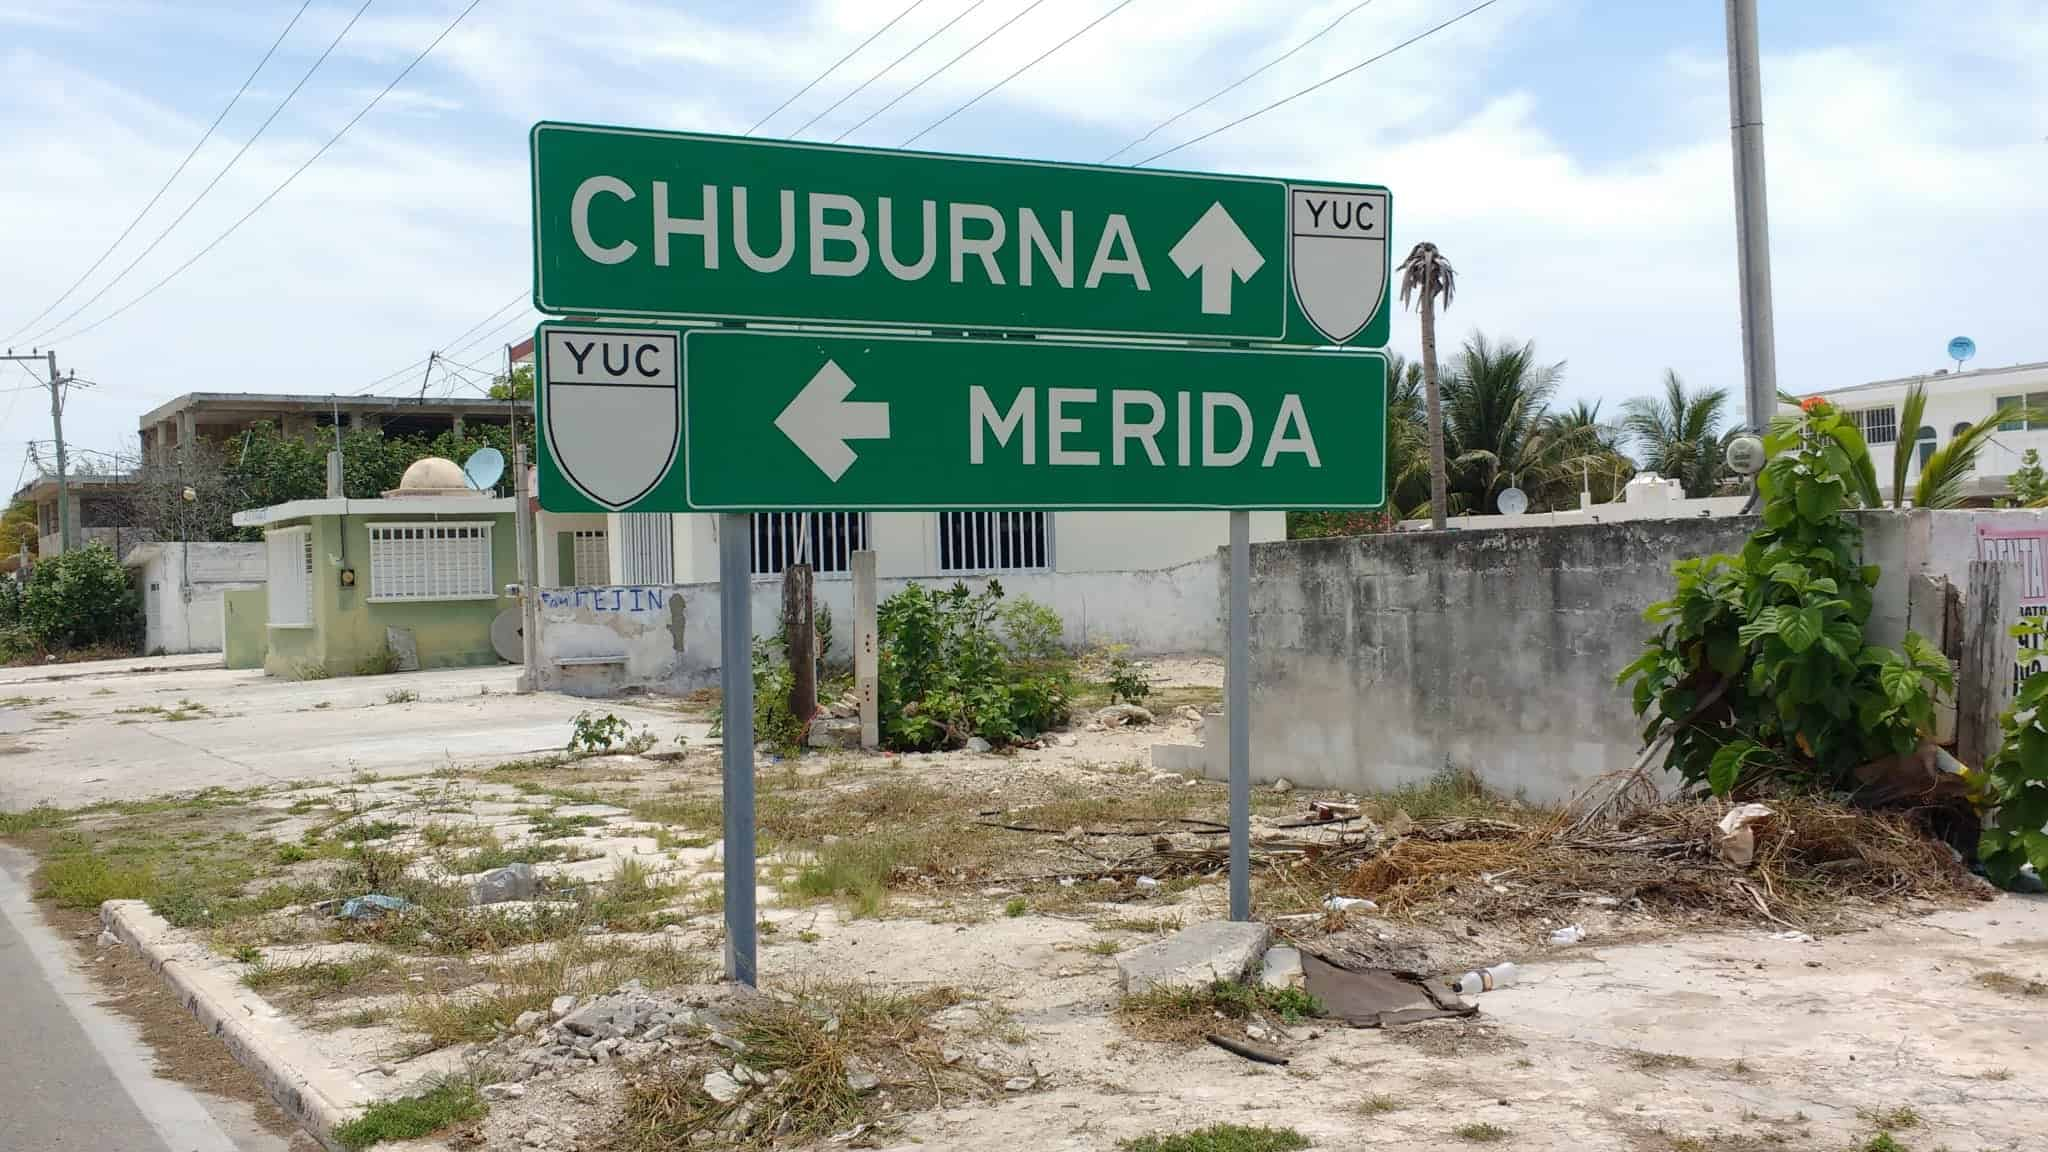 chuburna only 45 minutes from Merida